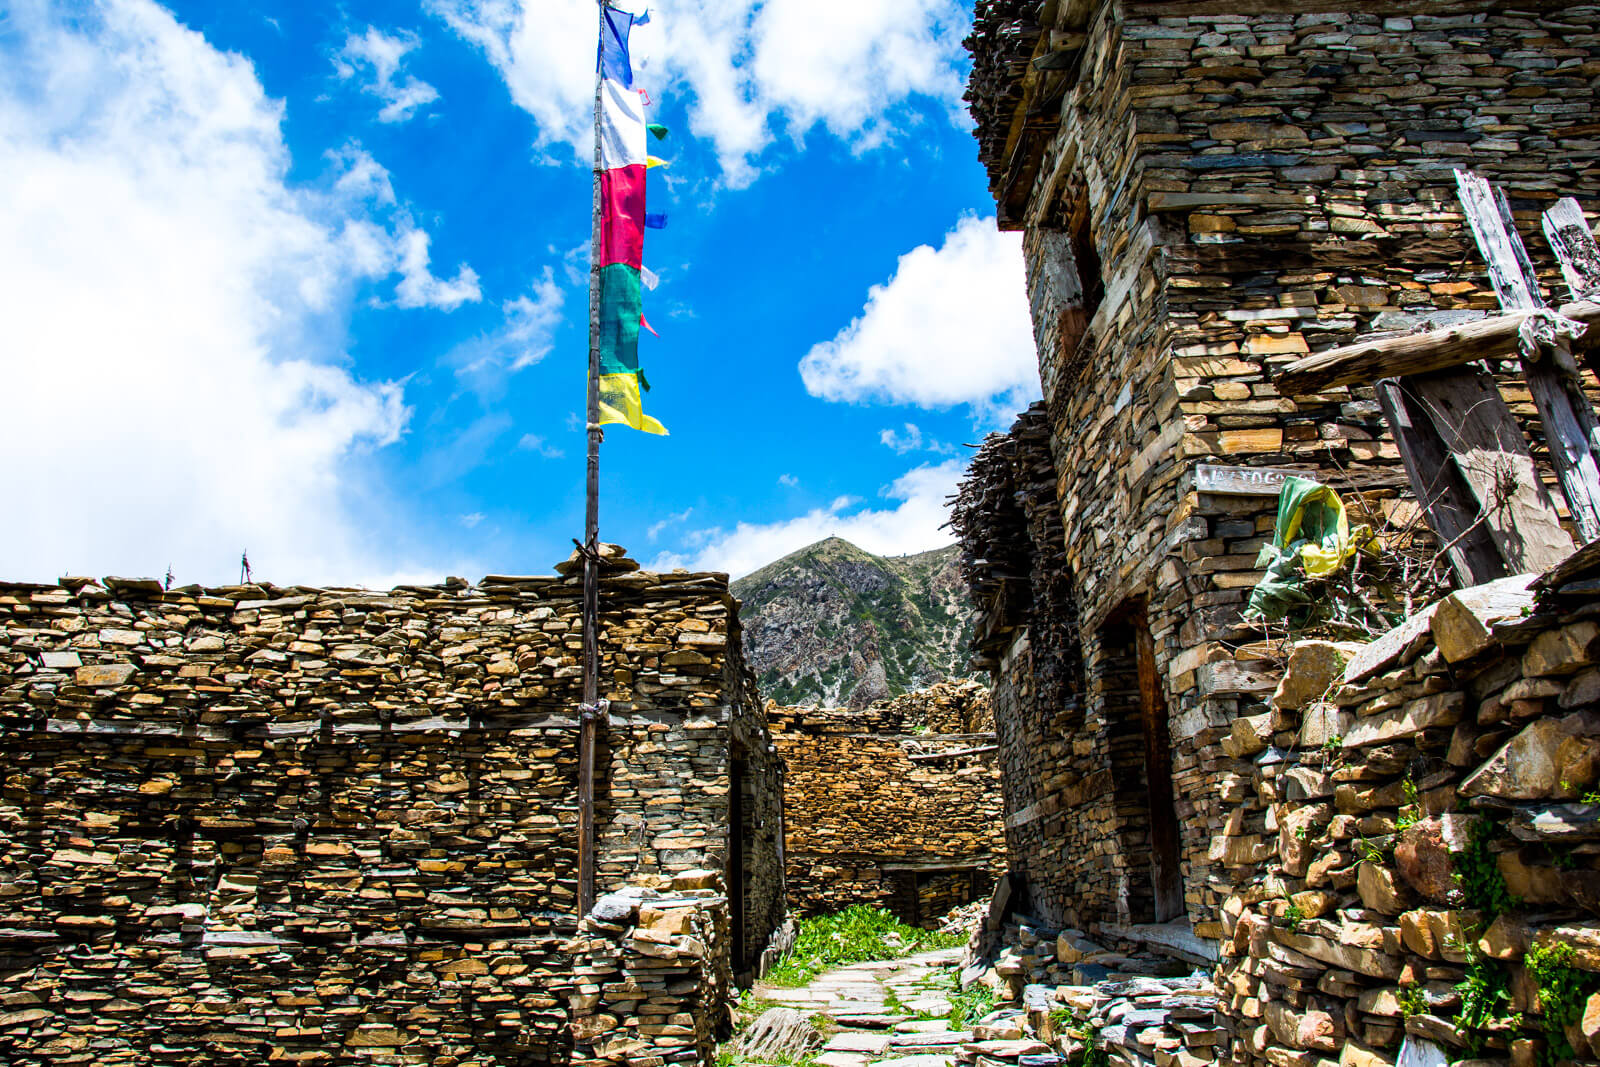 The Tibetean Buddhist Towns of the Annapurna Circuit Trek